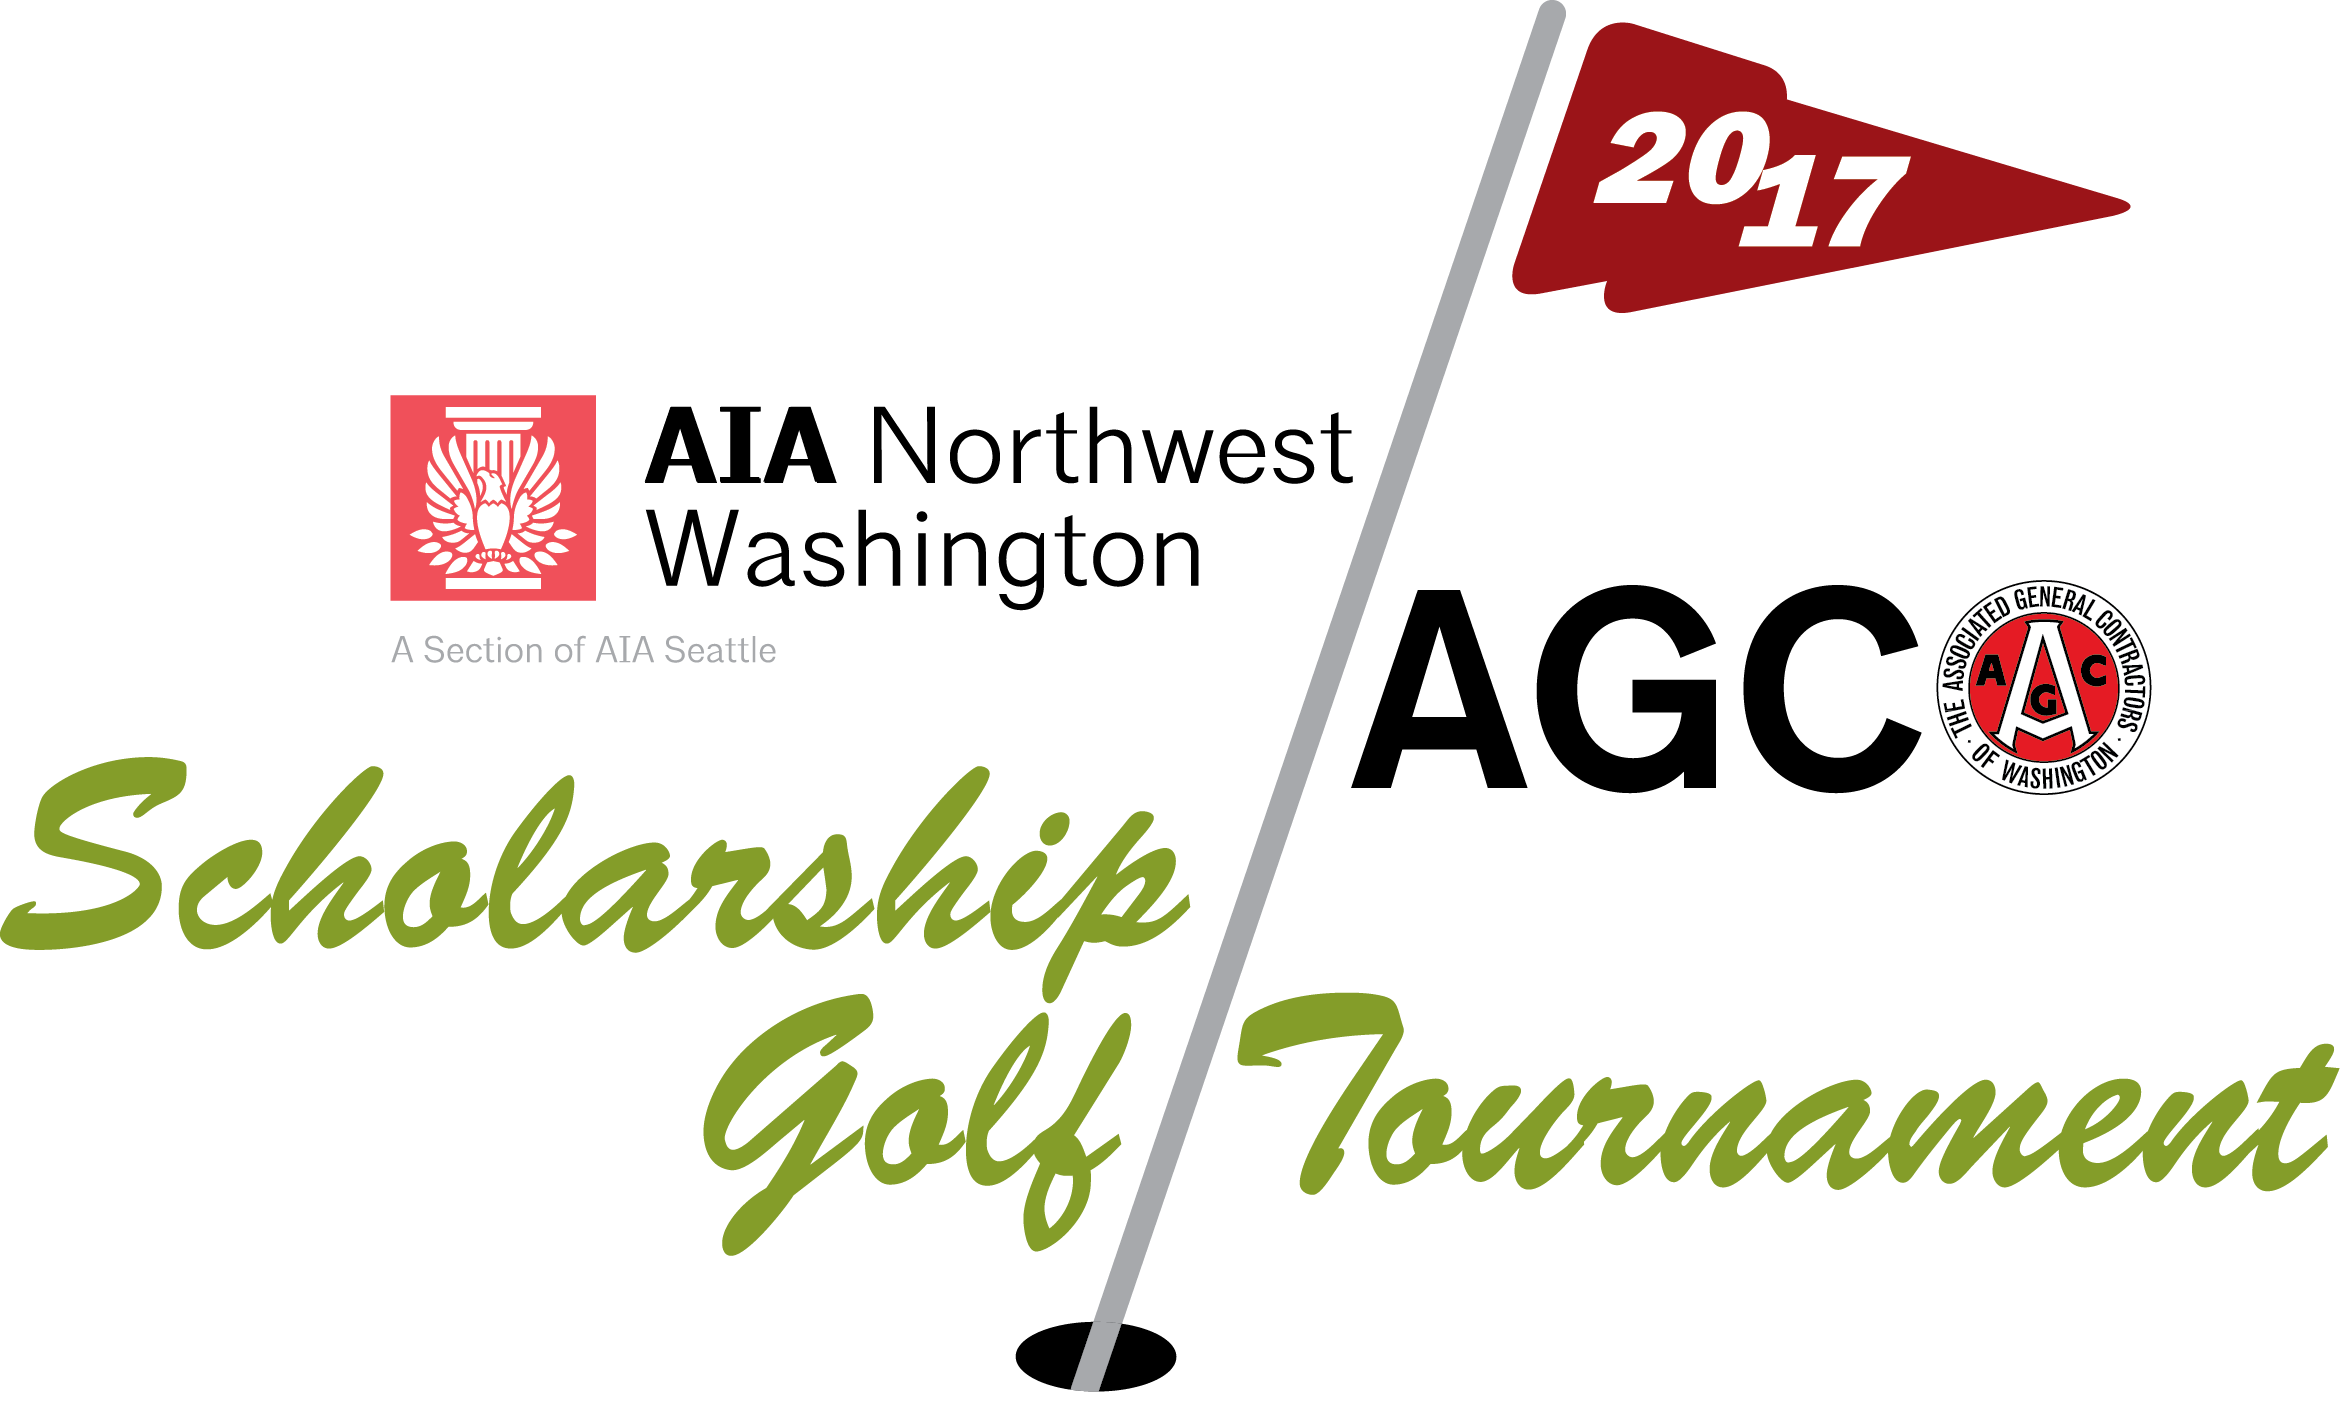 Join the Northwest Washington Chapter of the American Institute of Architects and the Associated General Contractors Northern District as we host the 2017 Scholarship Golf Tournament.